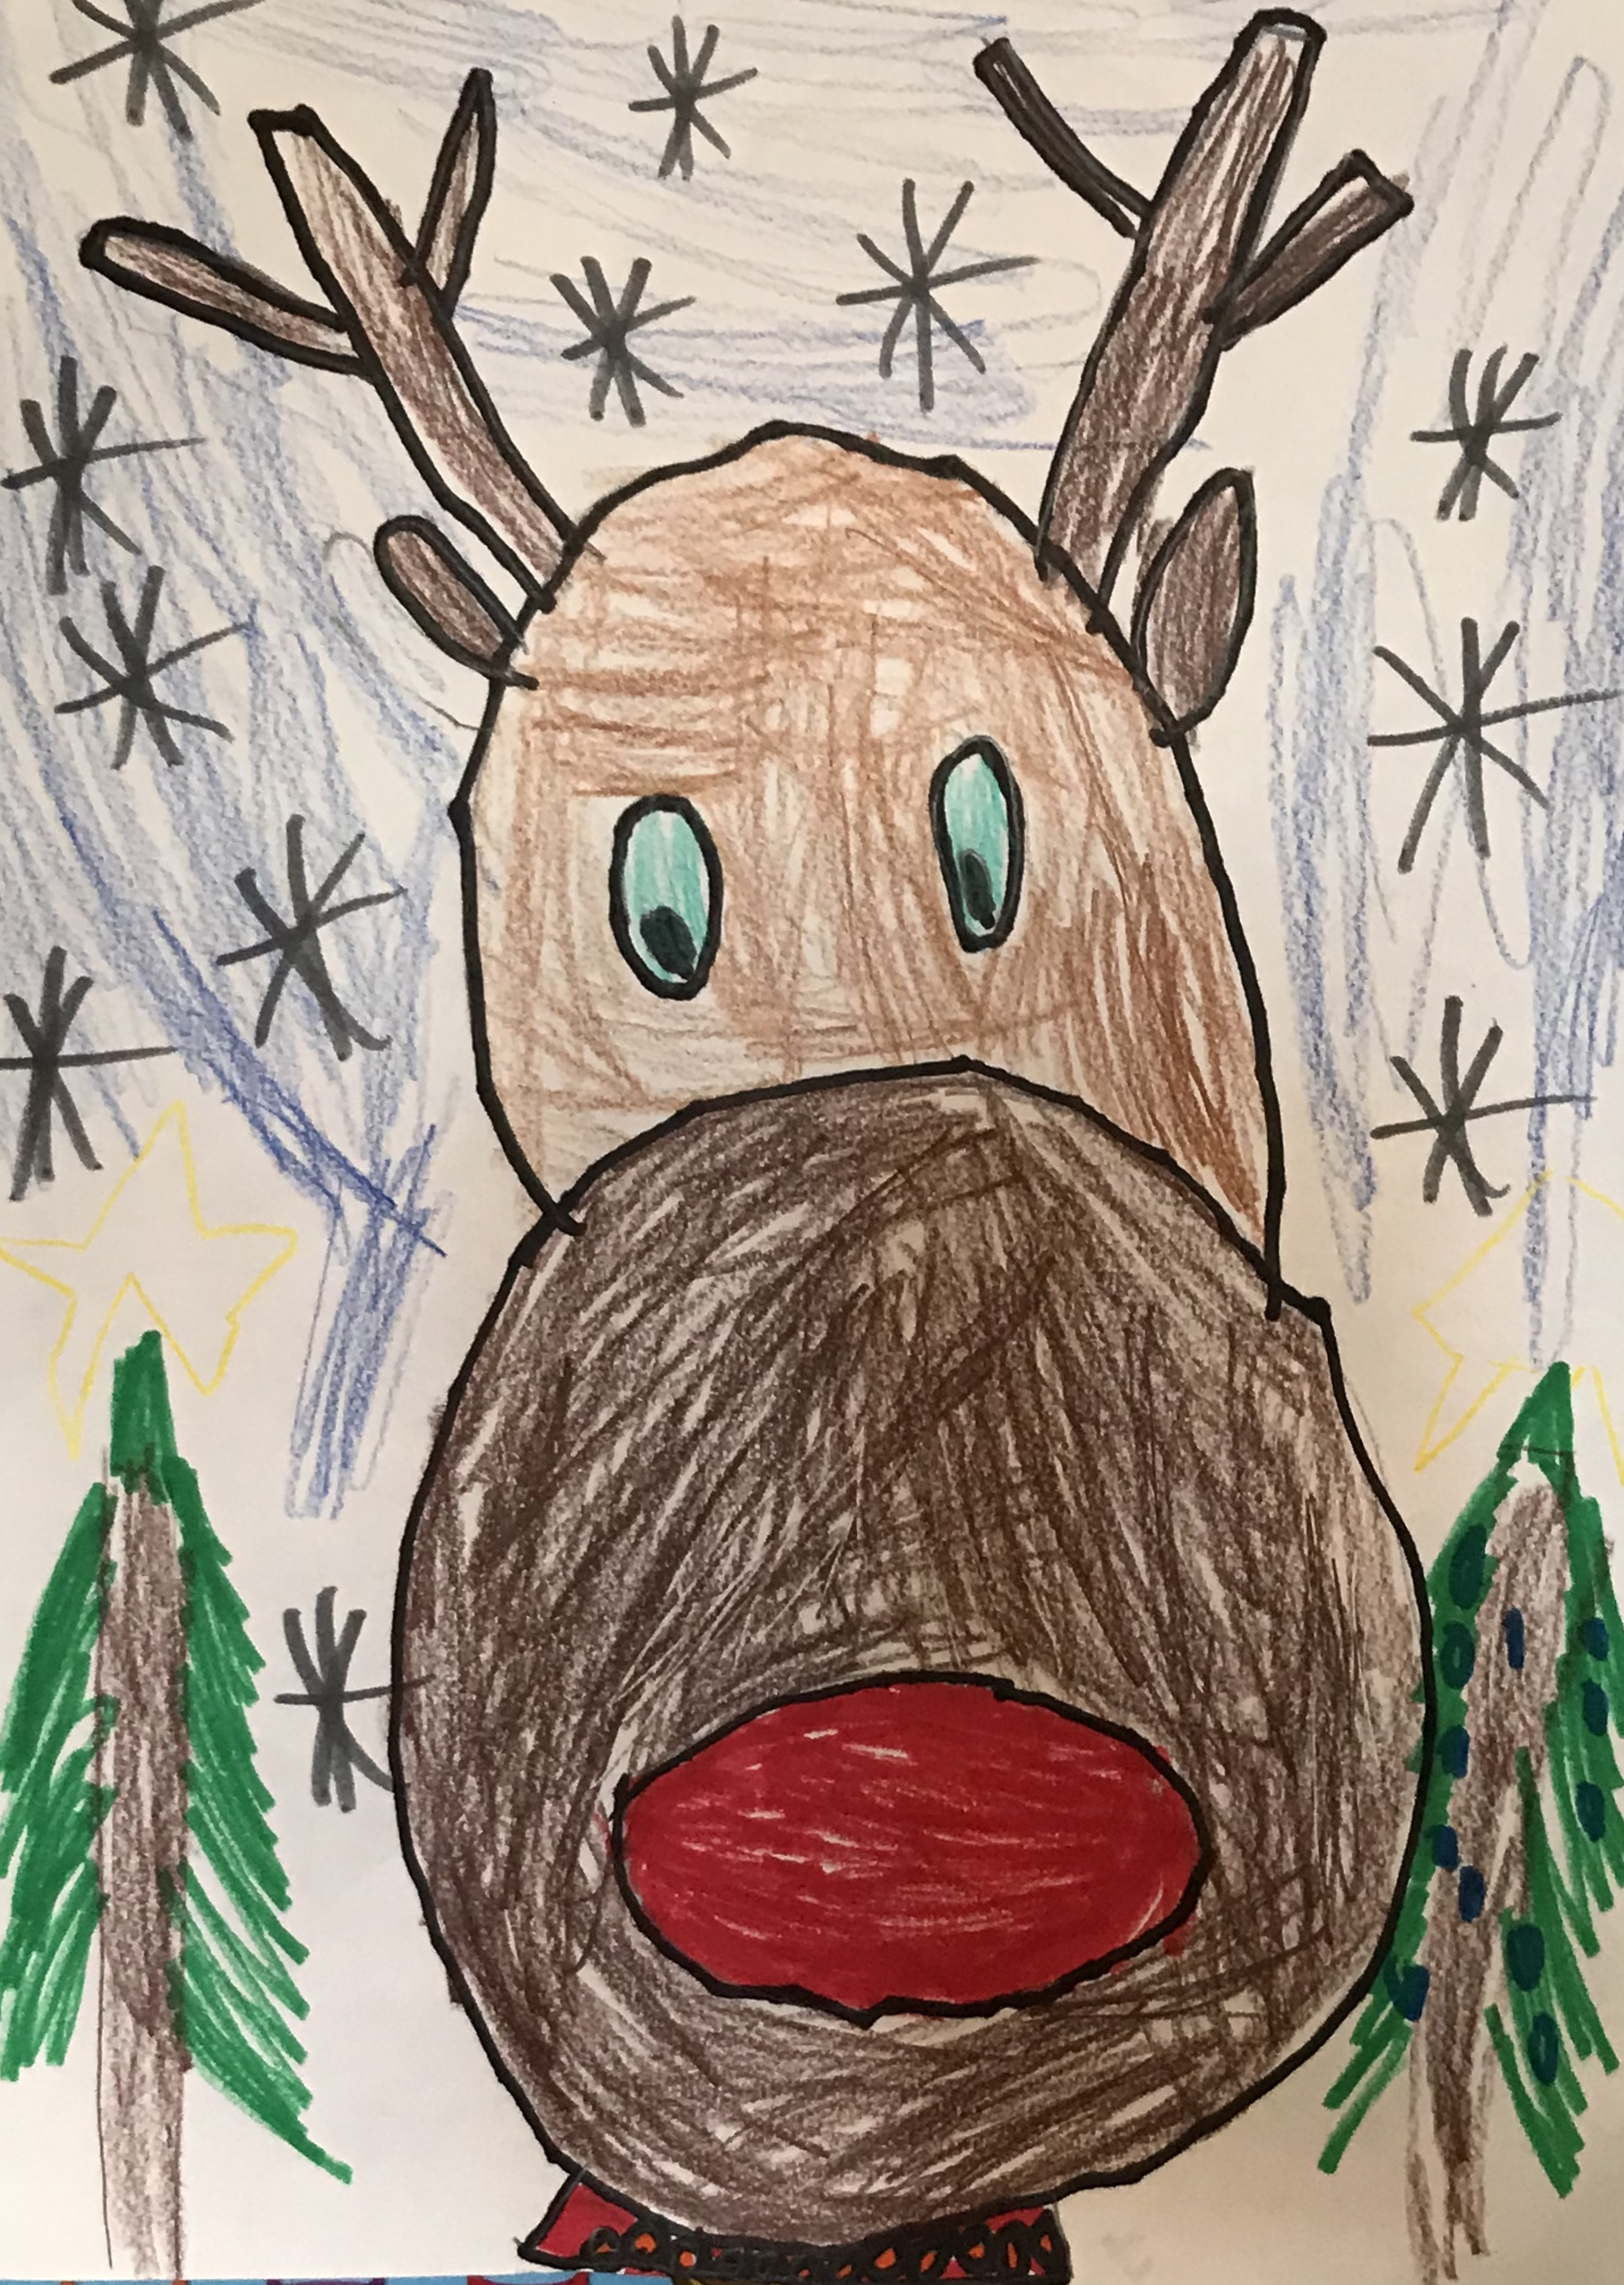 Drawn reindeer with snowy background